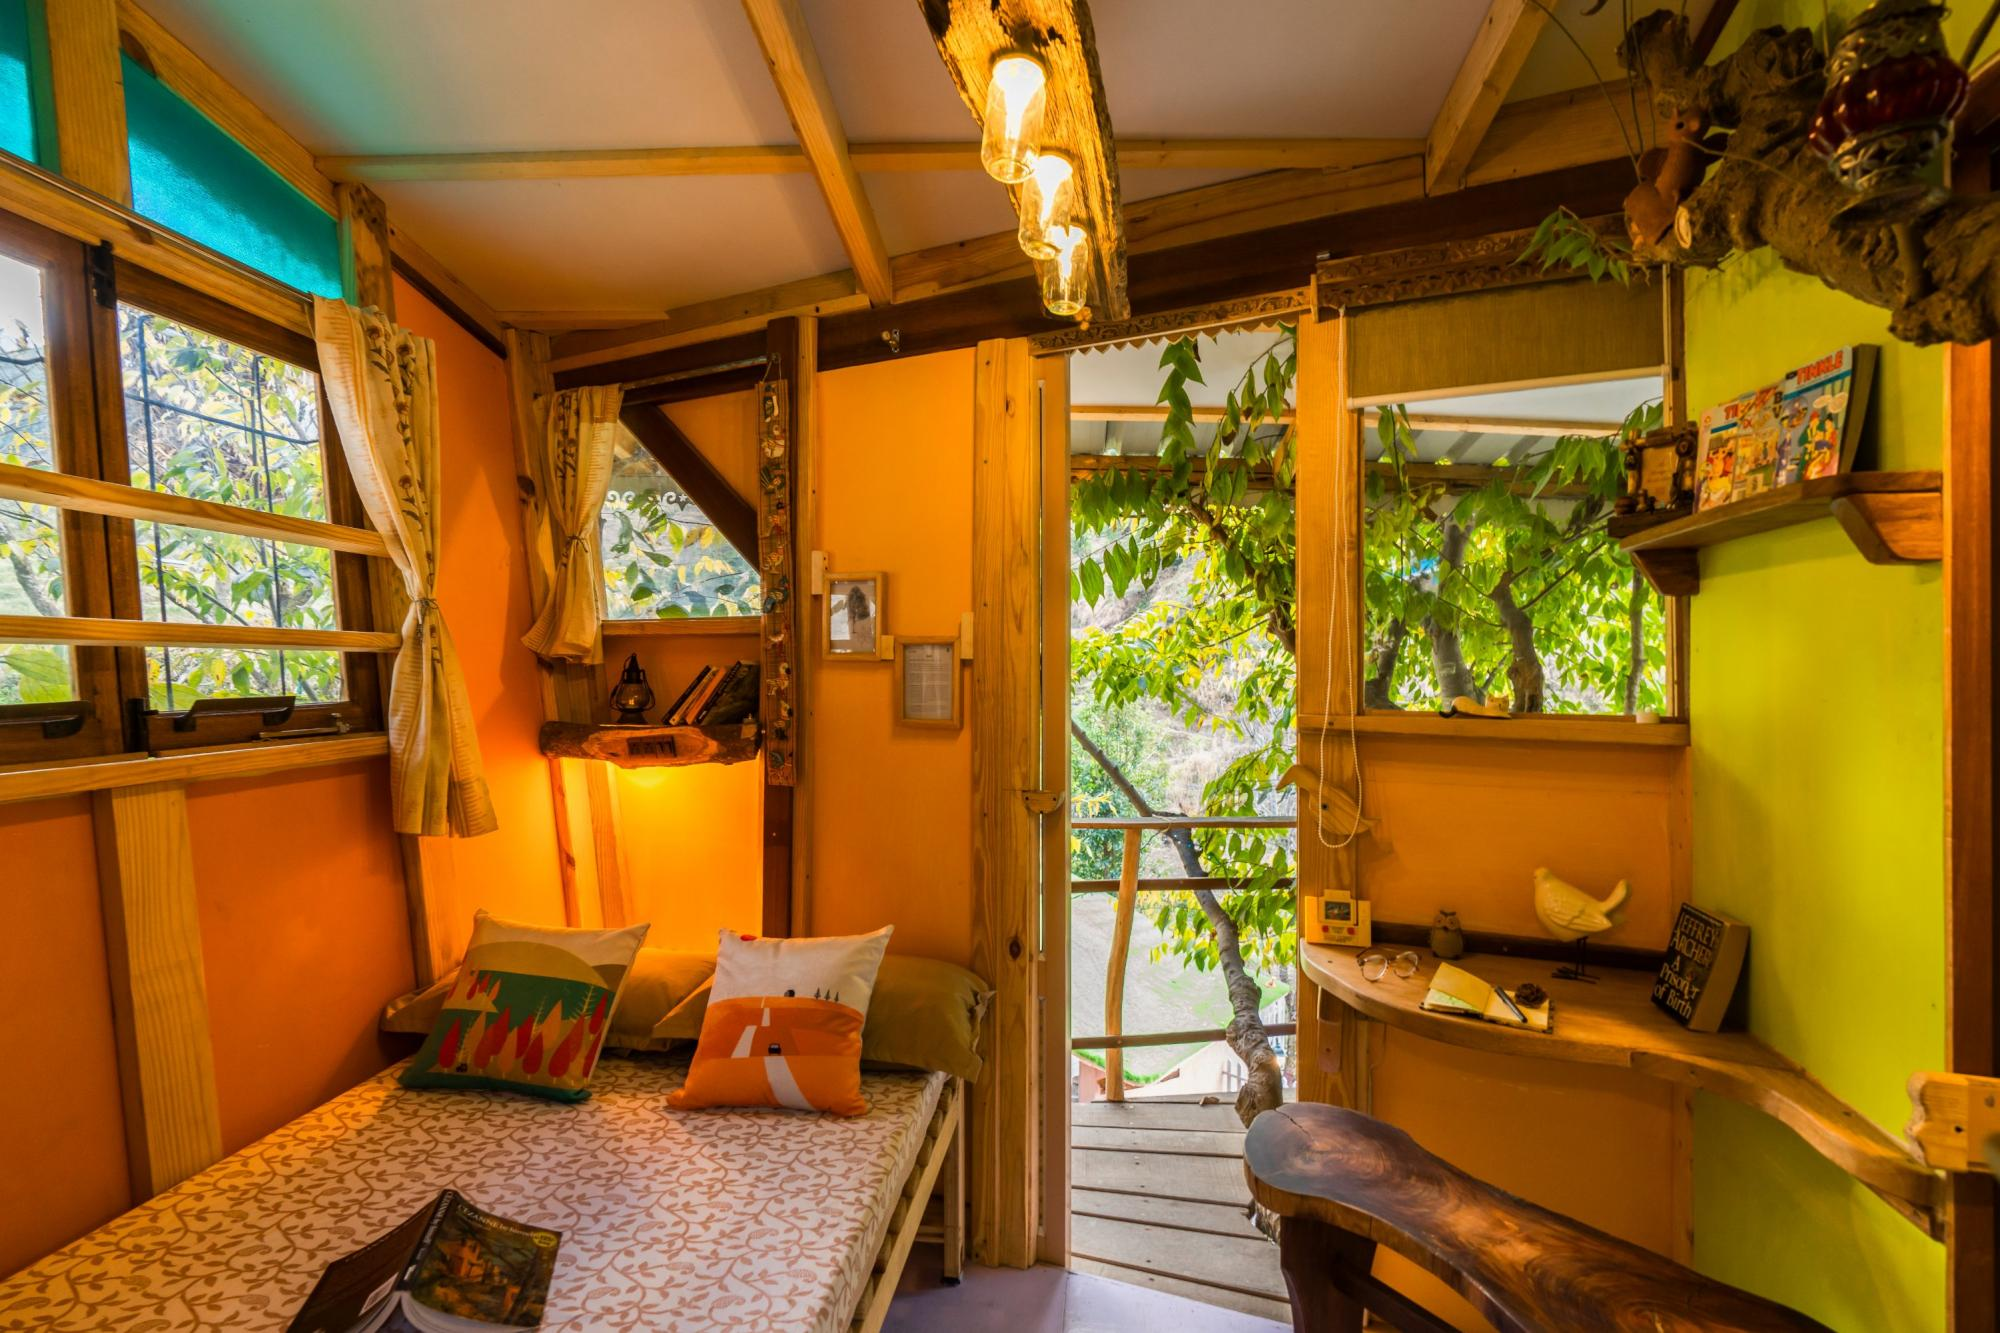 Private Treehouse cottage in Mussoorie, Uttarakhand